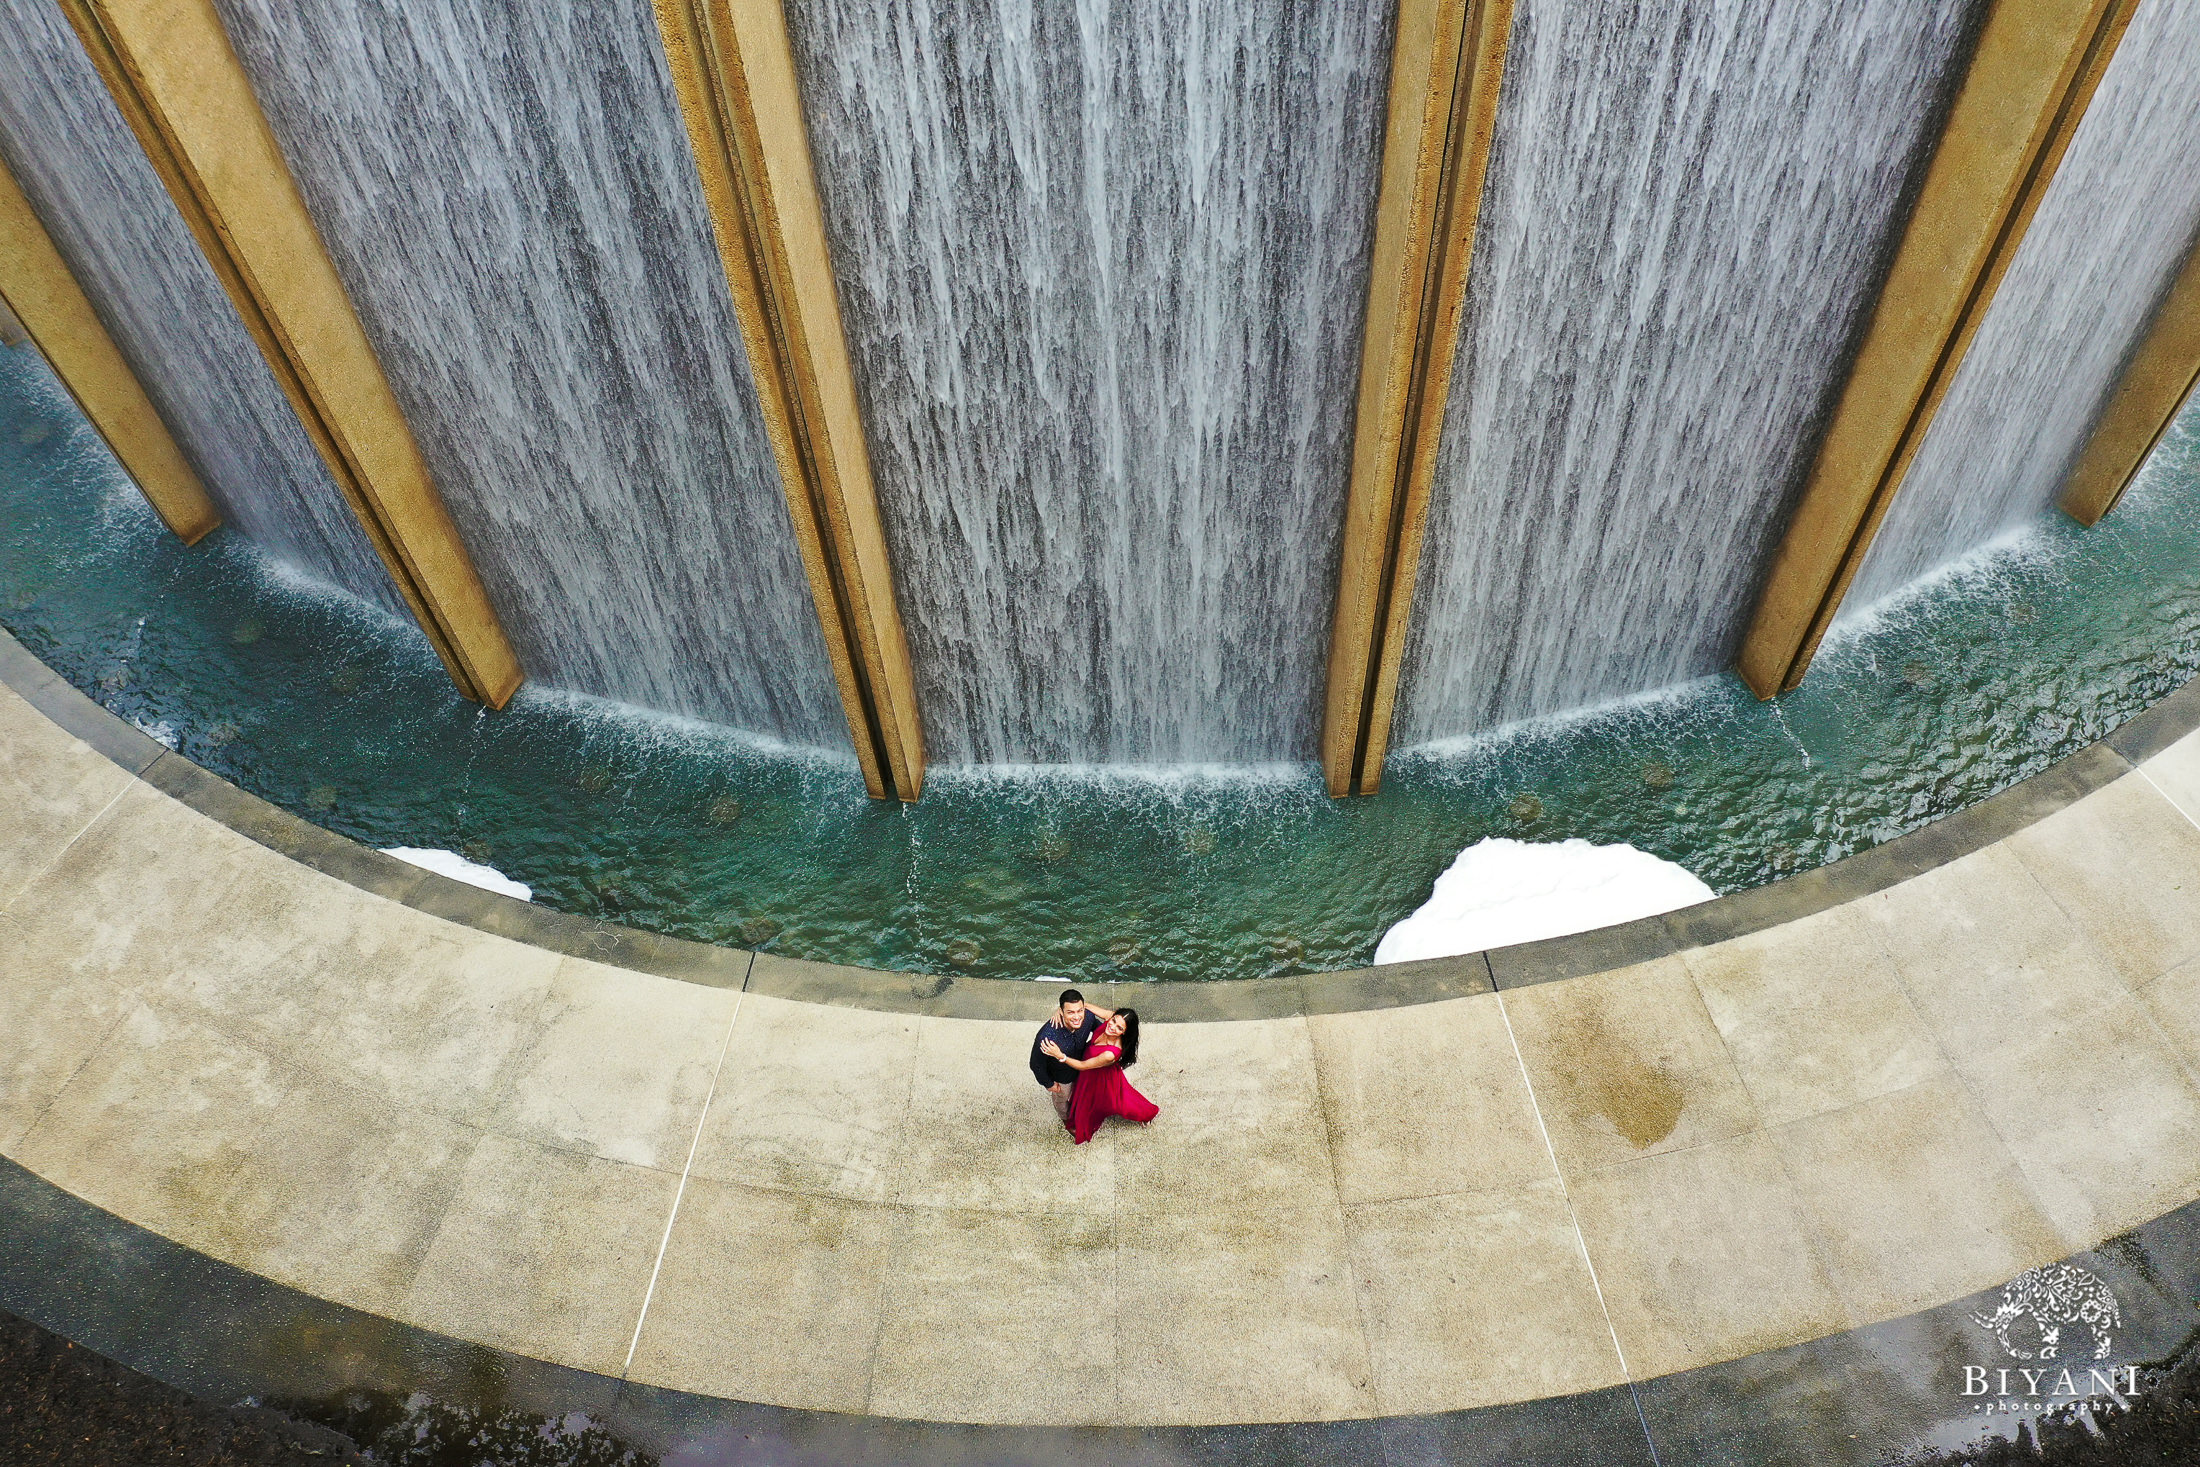 Ariel footage of couple posing in front of Water Wall at Houston Galleria